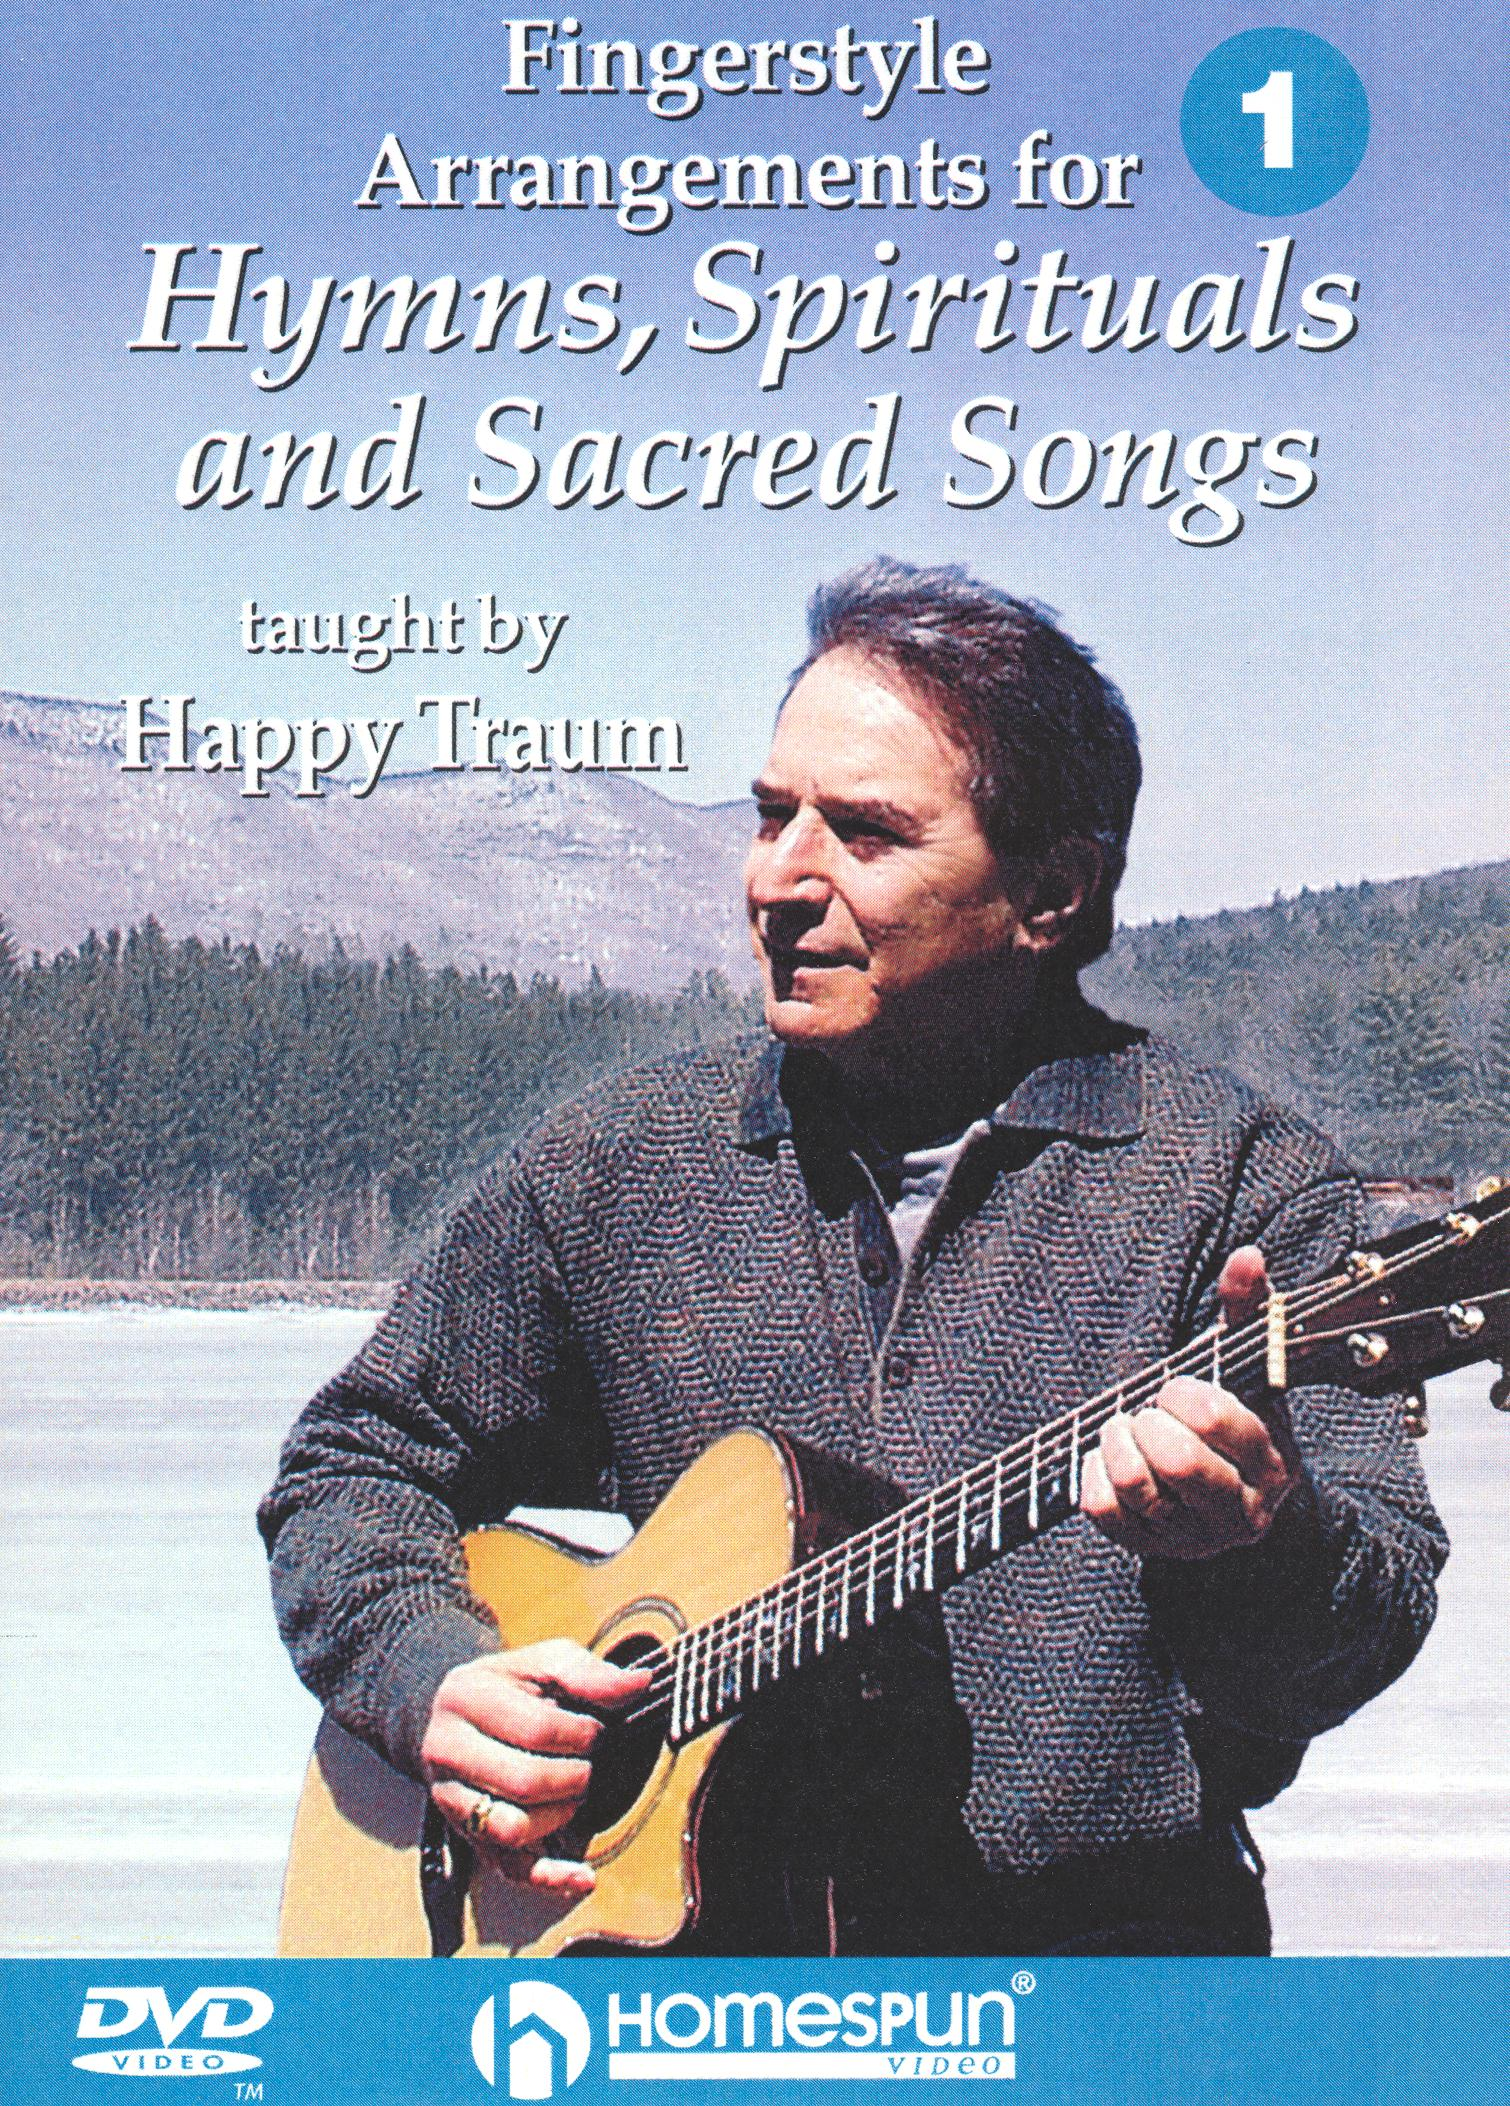 Happy Traum: Fingerstyle Arrangements for Hymns, Spirituals and Sacred Songs, Vol. 1